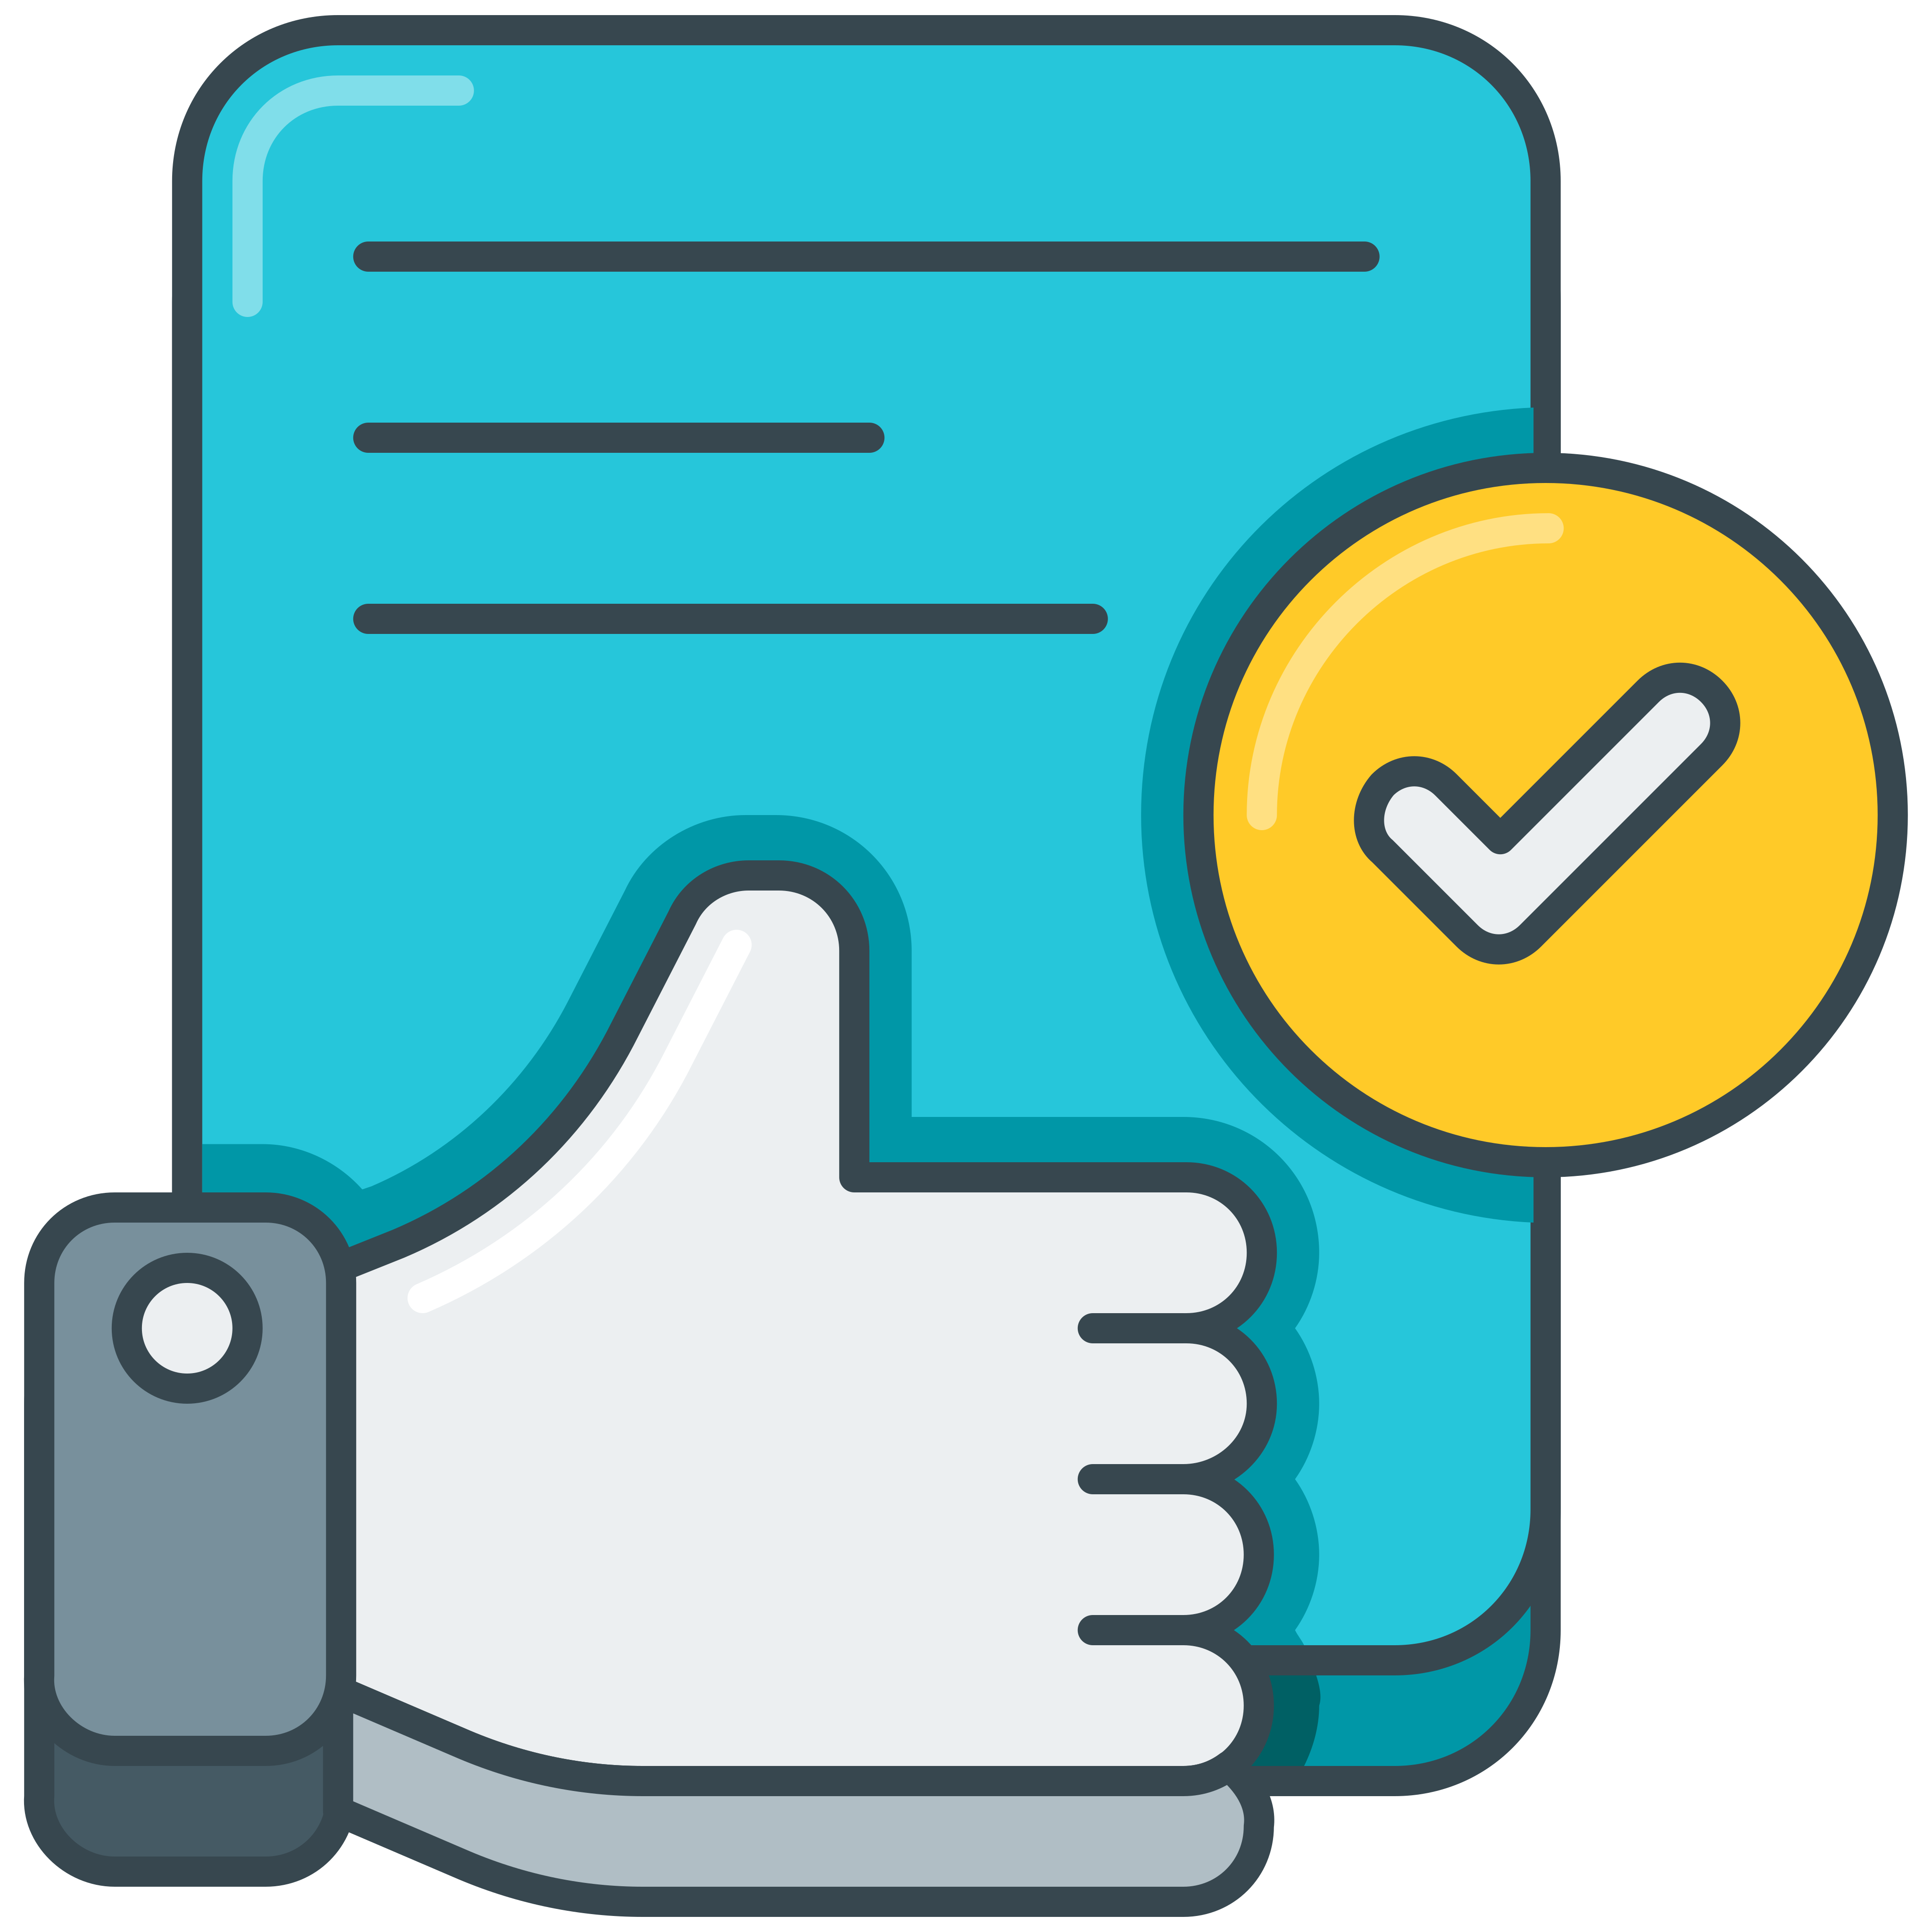 2709615_check_good_positive_review_thumbs up_icon